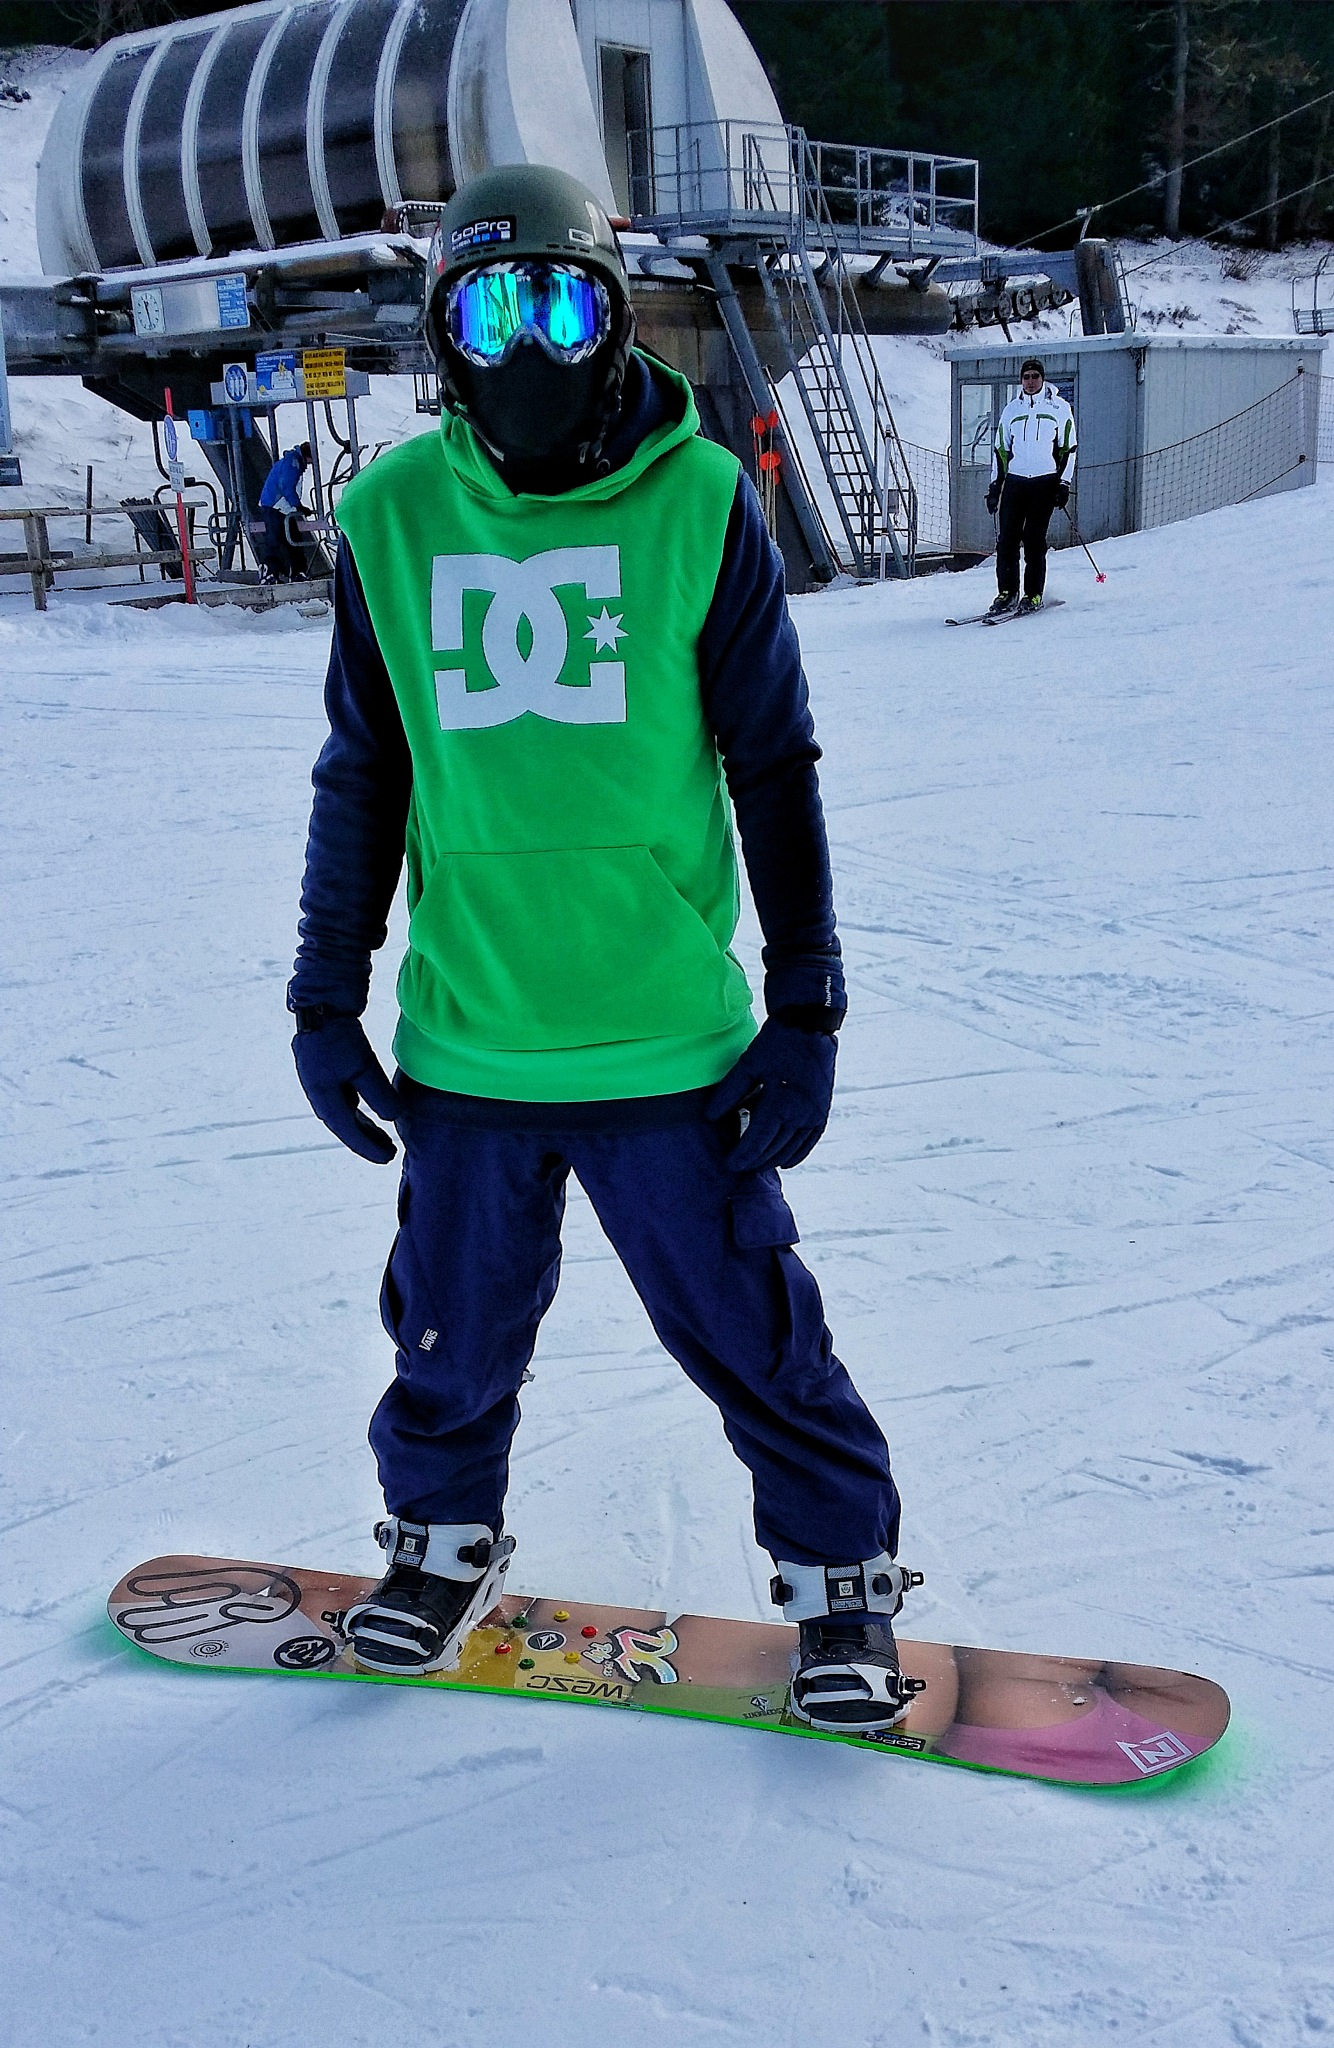 snowboard winter  by Thomas Cavaliere